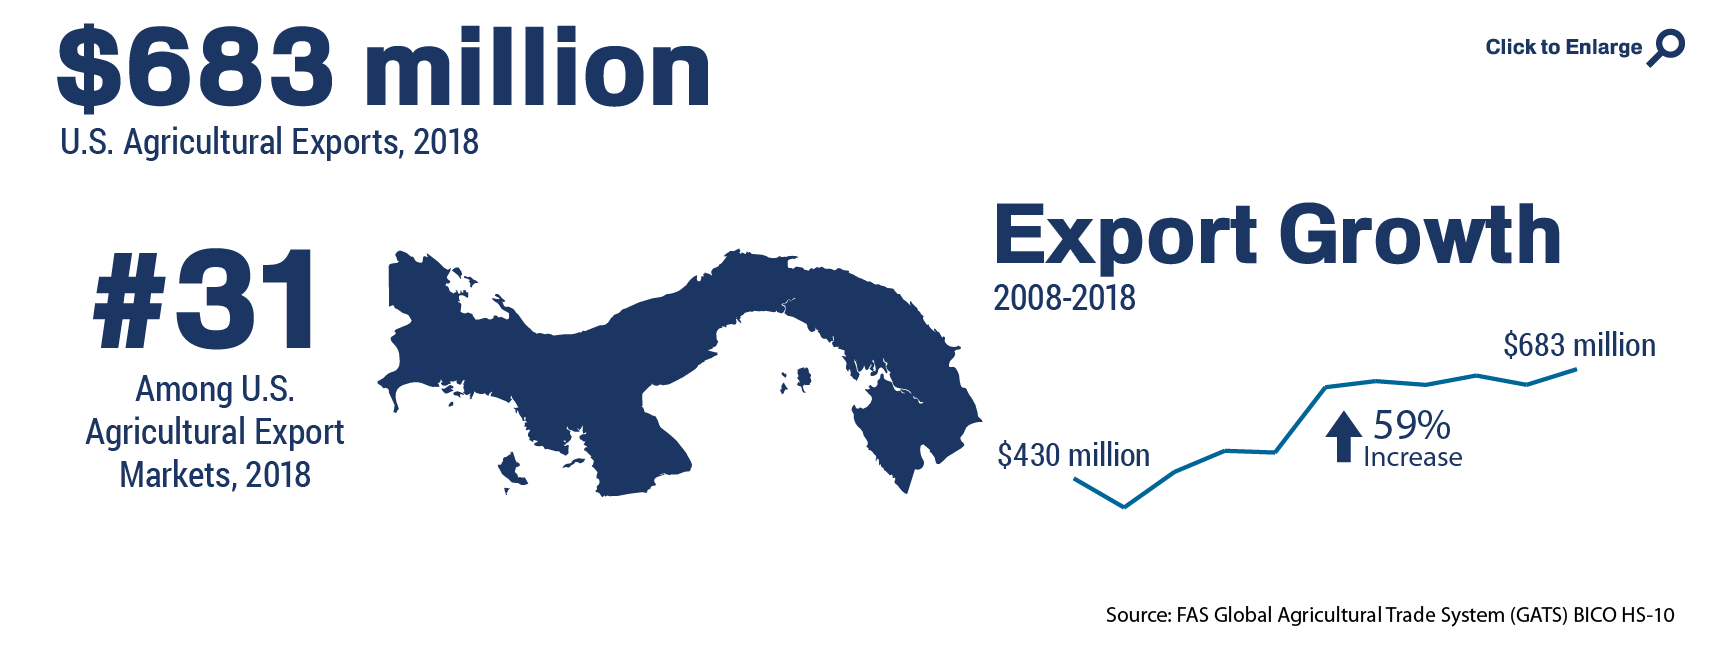 Infographic showing the ranking and total of U.S. agricultural trade to Panama in 2018